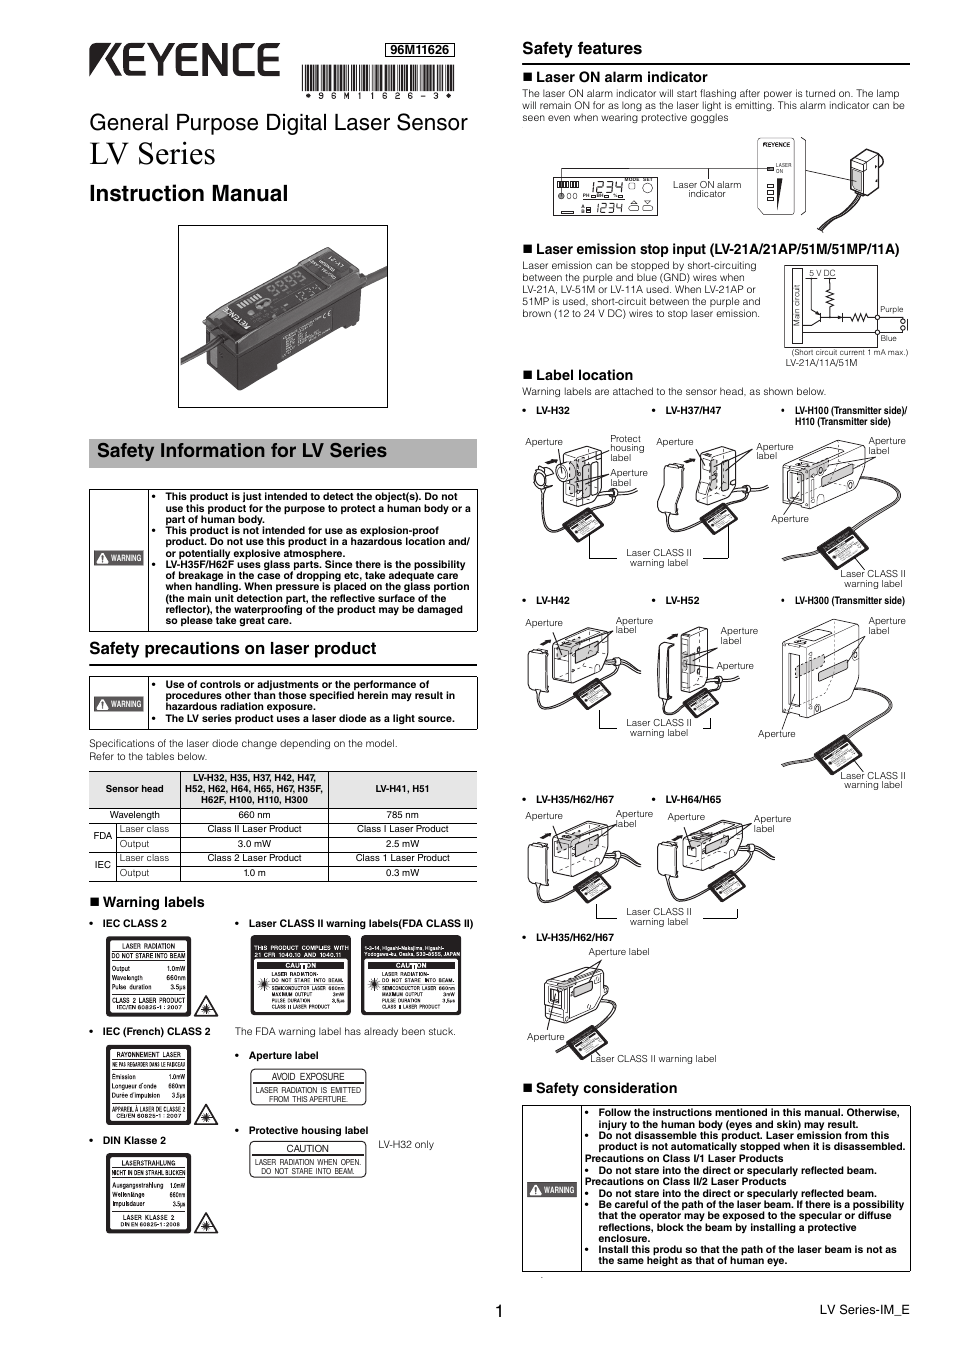 3 Lamp Wiring Diagram Keyence Lv Series User Manual 10 Pages